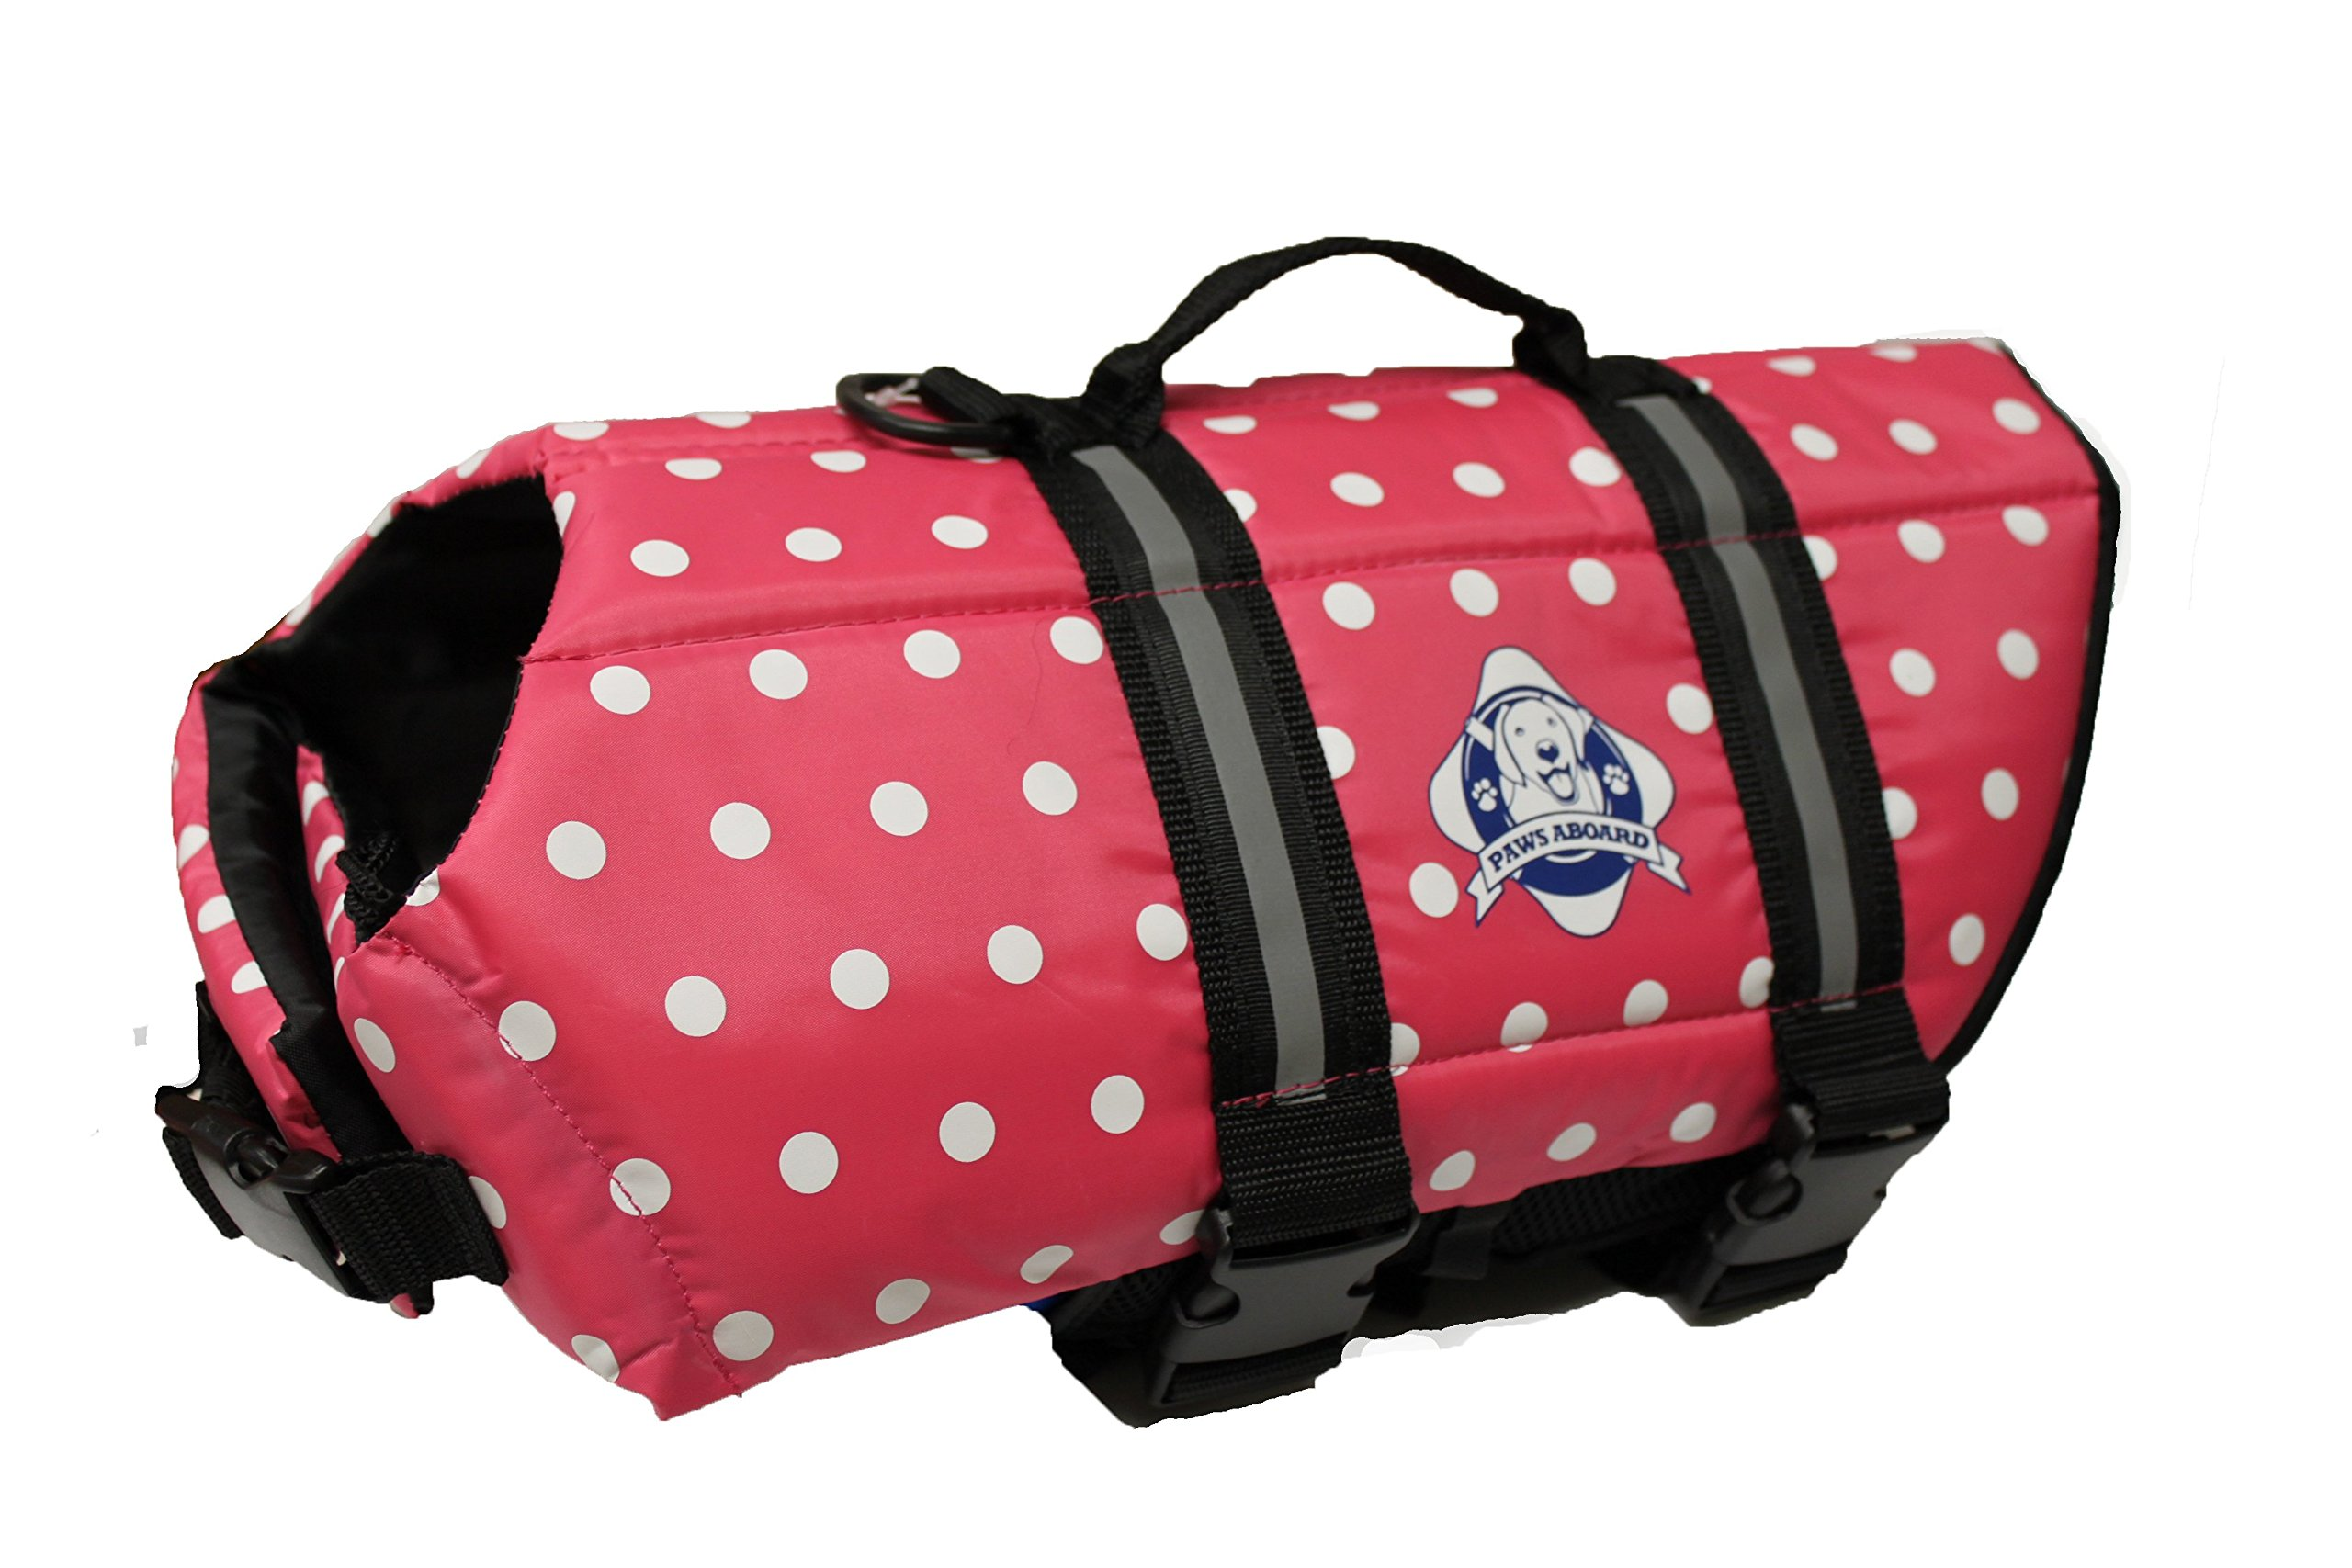 Fido Pet Products Paws Aboard Doggy Life Jacket, Medium, Pink Polka Dot